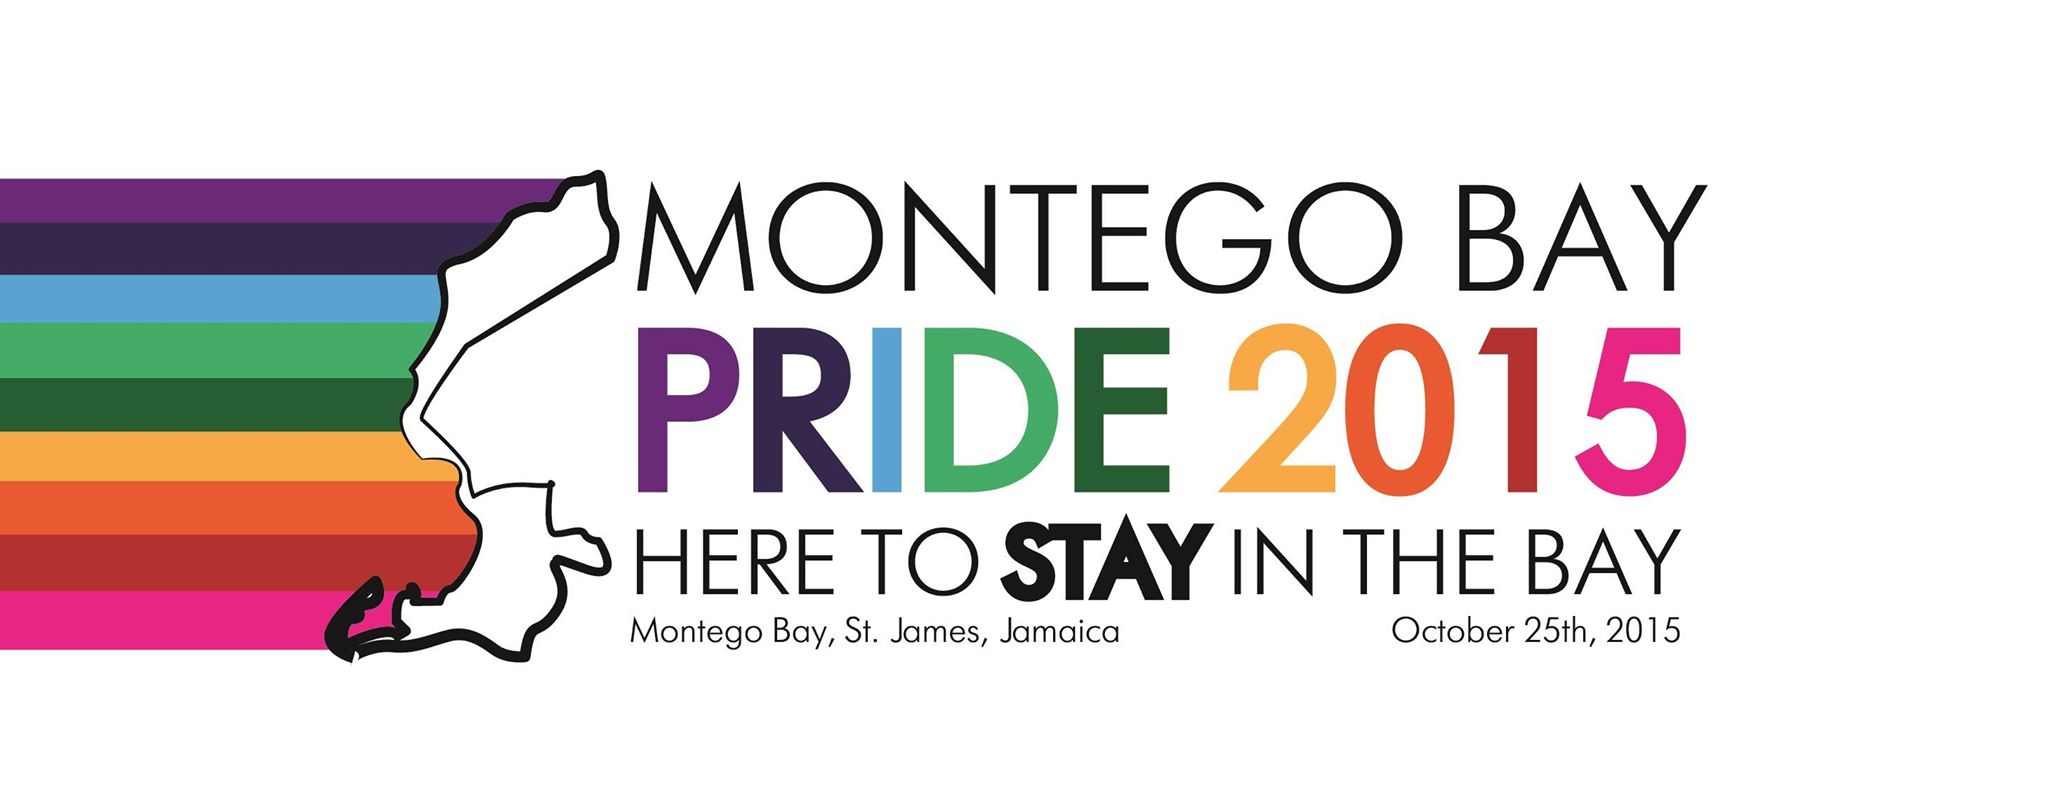 Banner promoting Montego Bay Pride 2015.